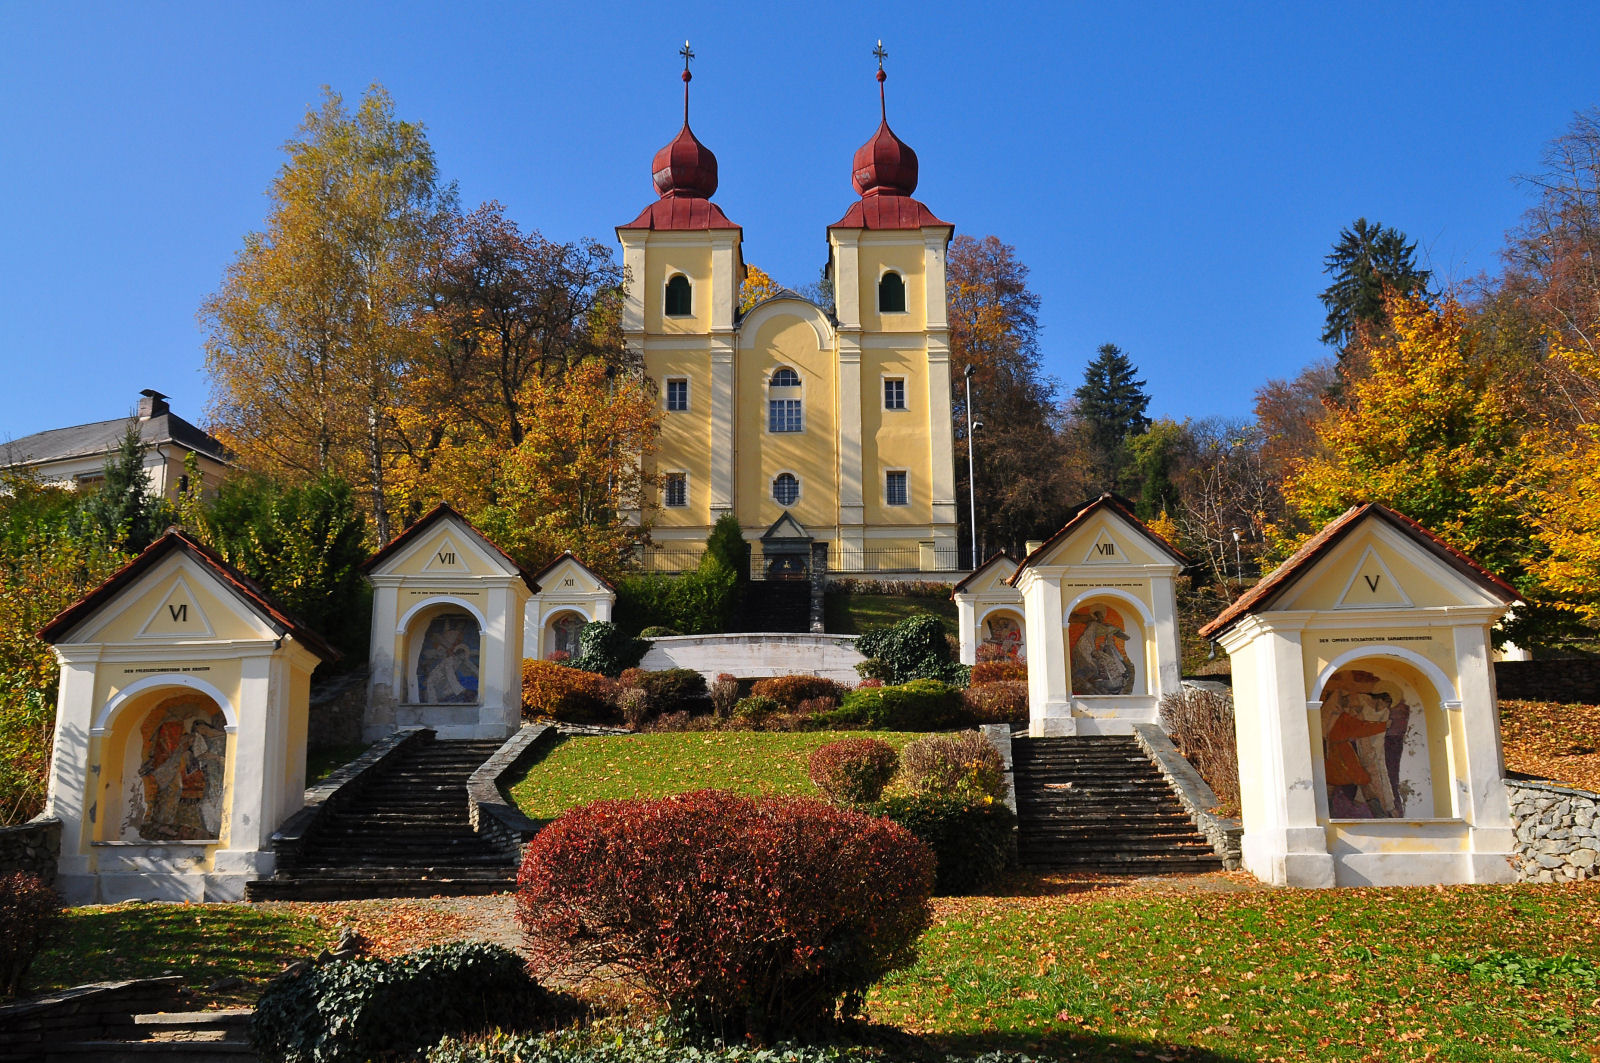 Memorial place of the state Carinthia with church on Kreuzbergl in Klagenfurt, Carinthia, Austria